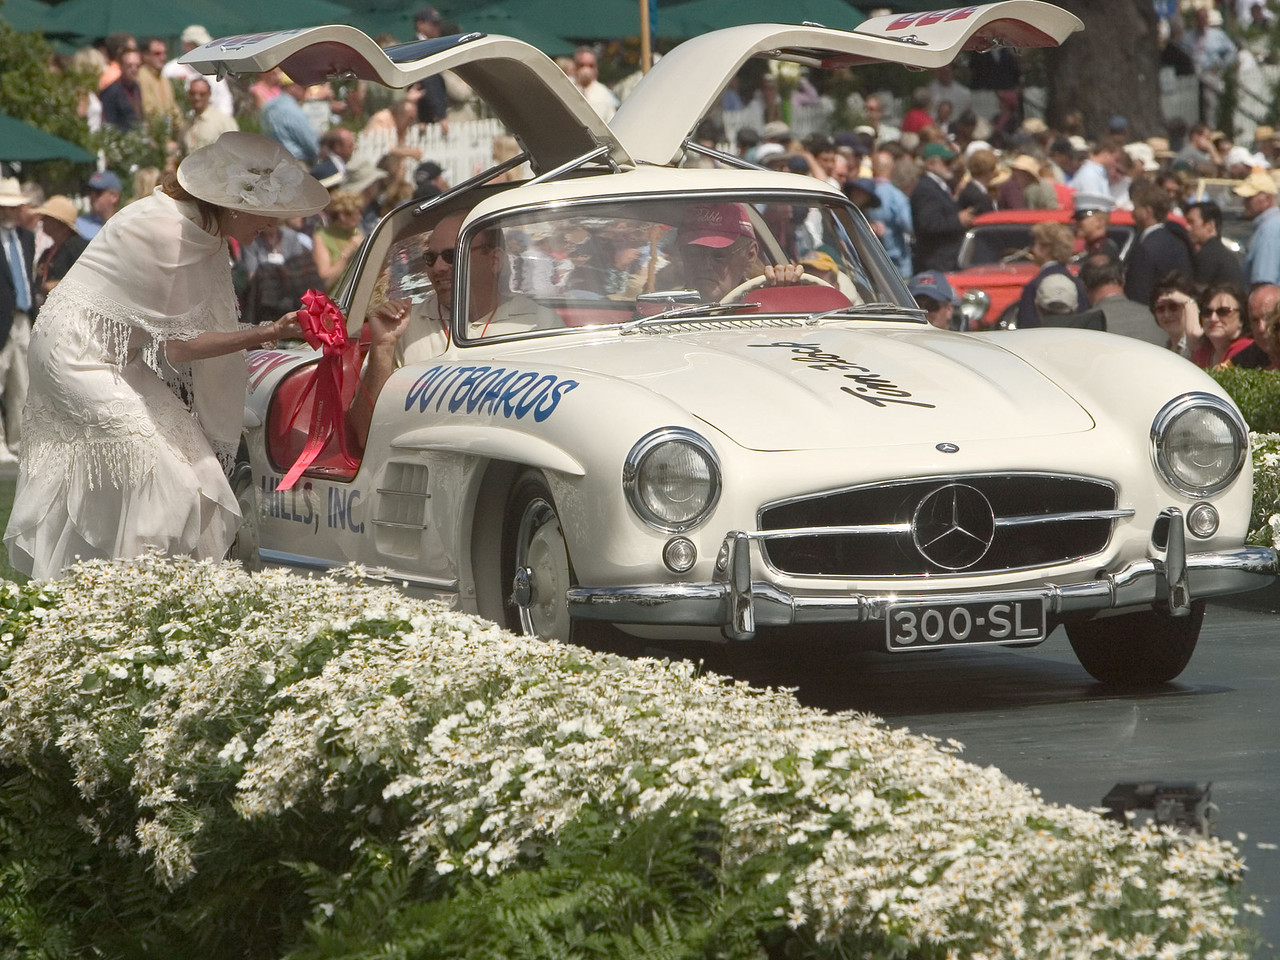 1955 Mercedes-Benz 300 SL Coupe.